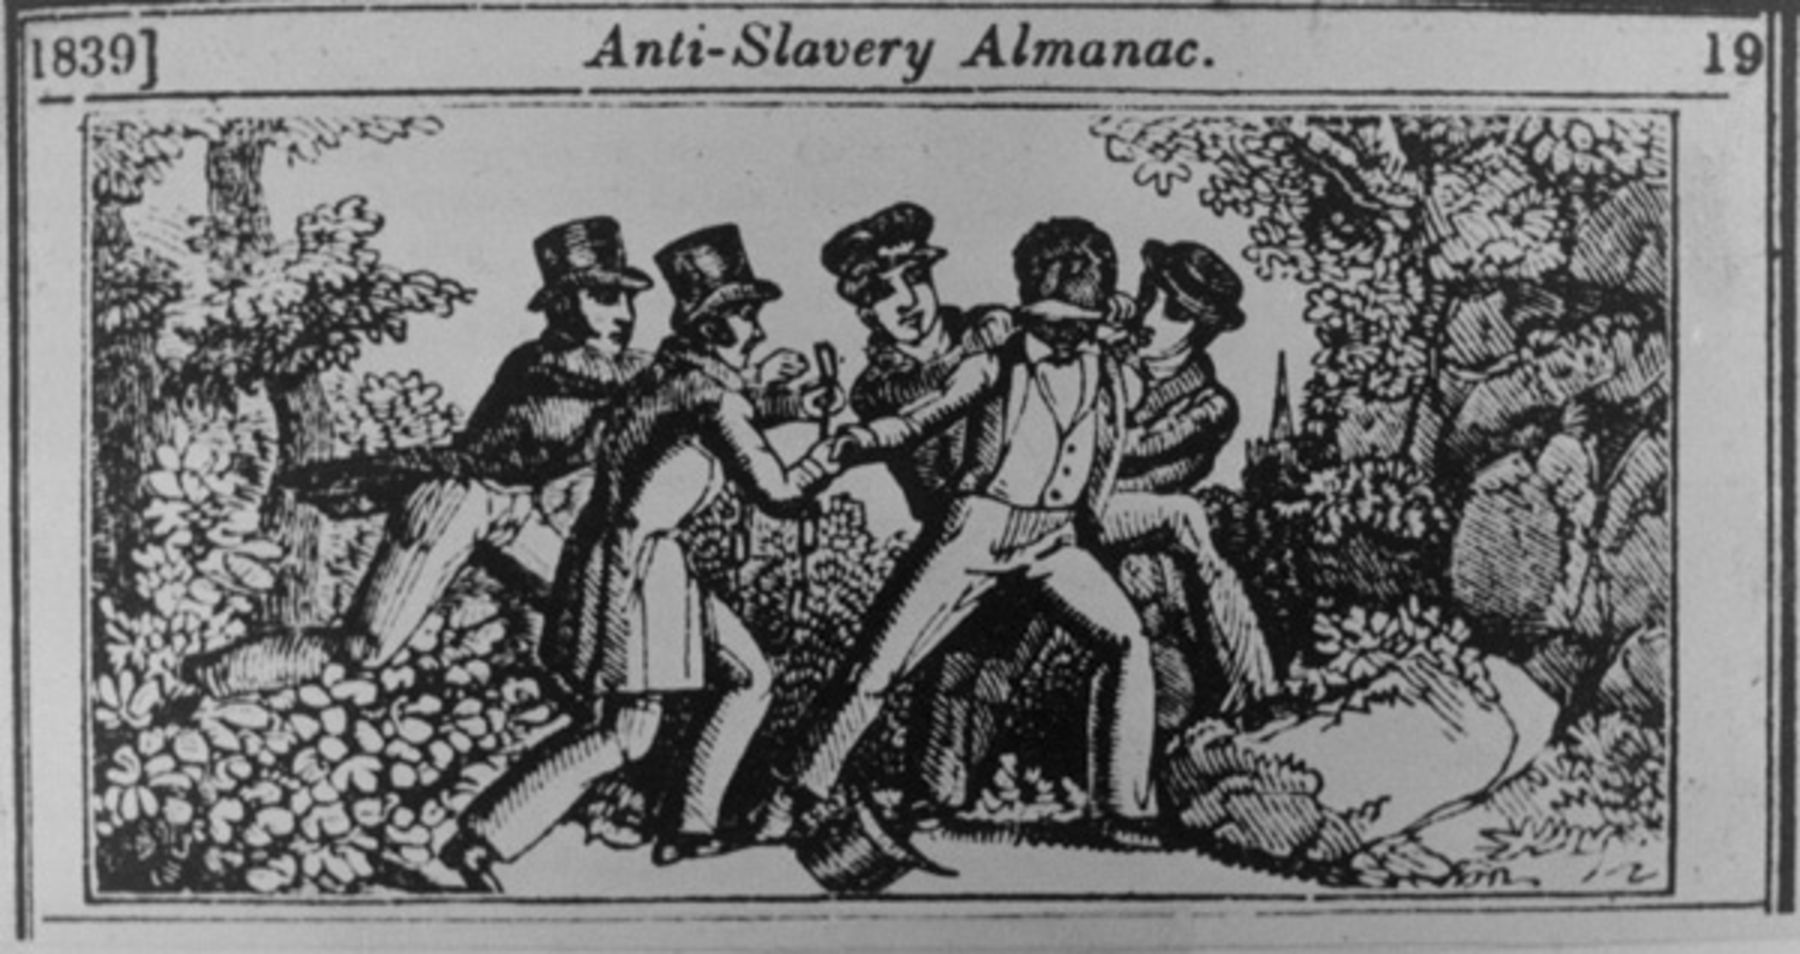 An 1839 woodcut depicts a slave patrol capturing a fugitive. Source: Anti-Slavery Almanac/Public domain